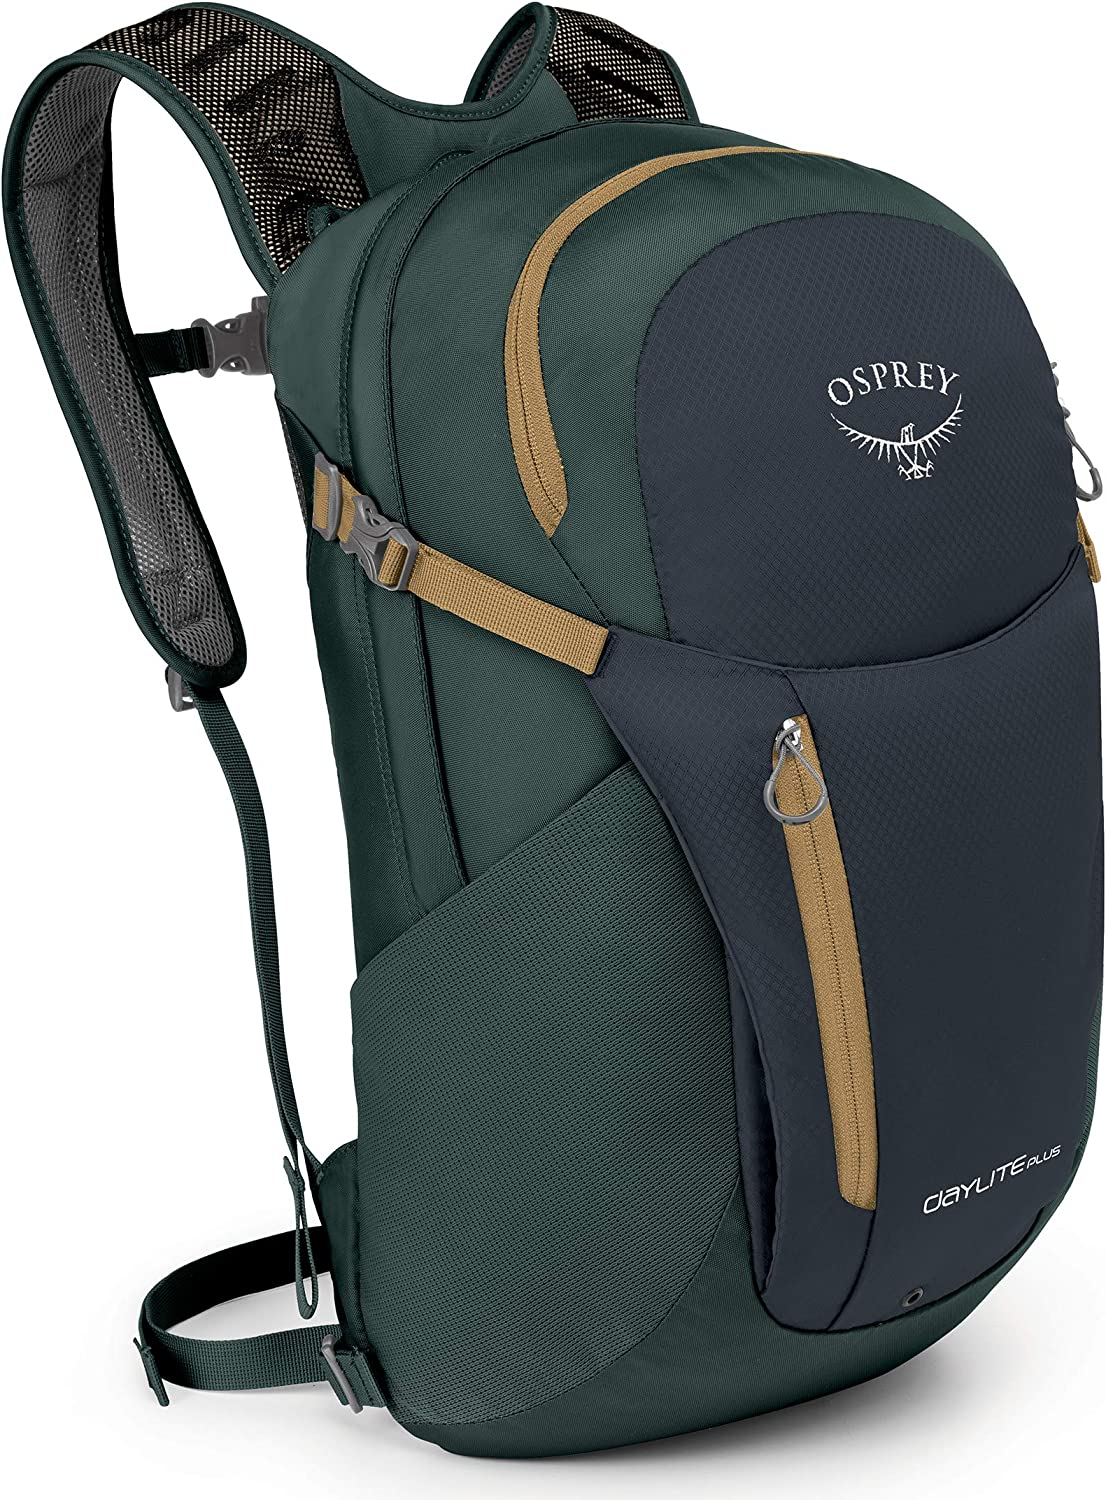 best bike commuter backpack, best commuter backpack, commuter backpack, osprey metron bike commuter pack, best laptop commuter backpack, Timbuk2 Spire Backpack,